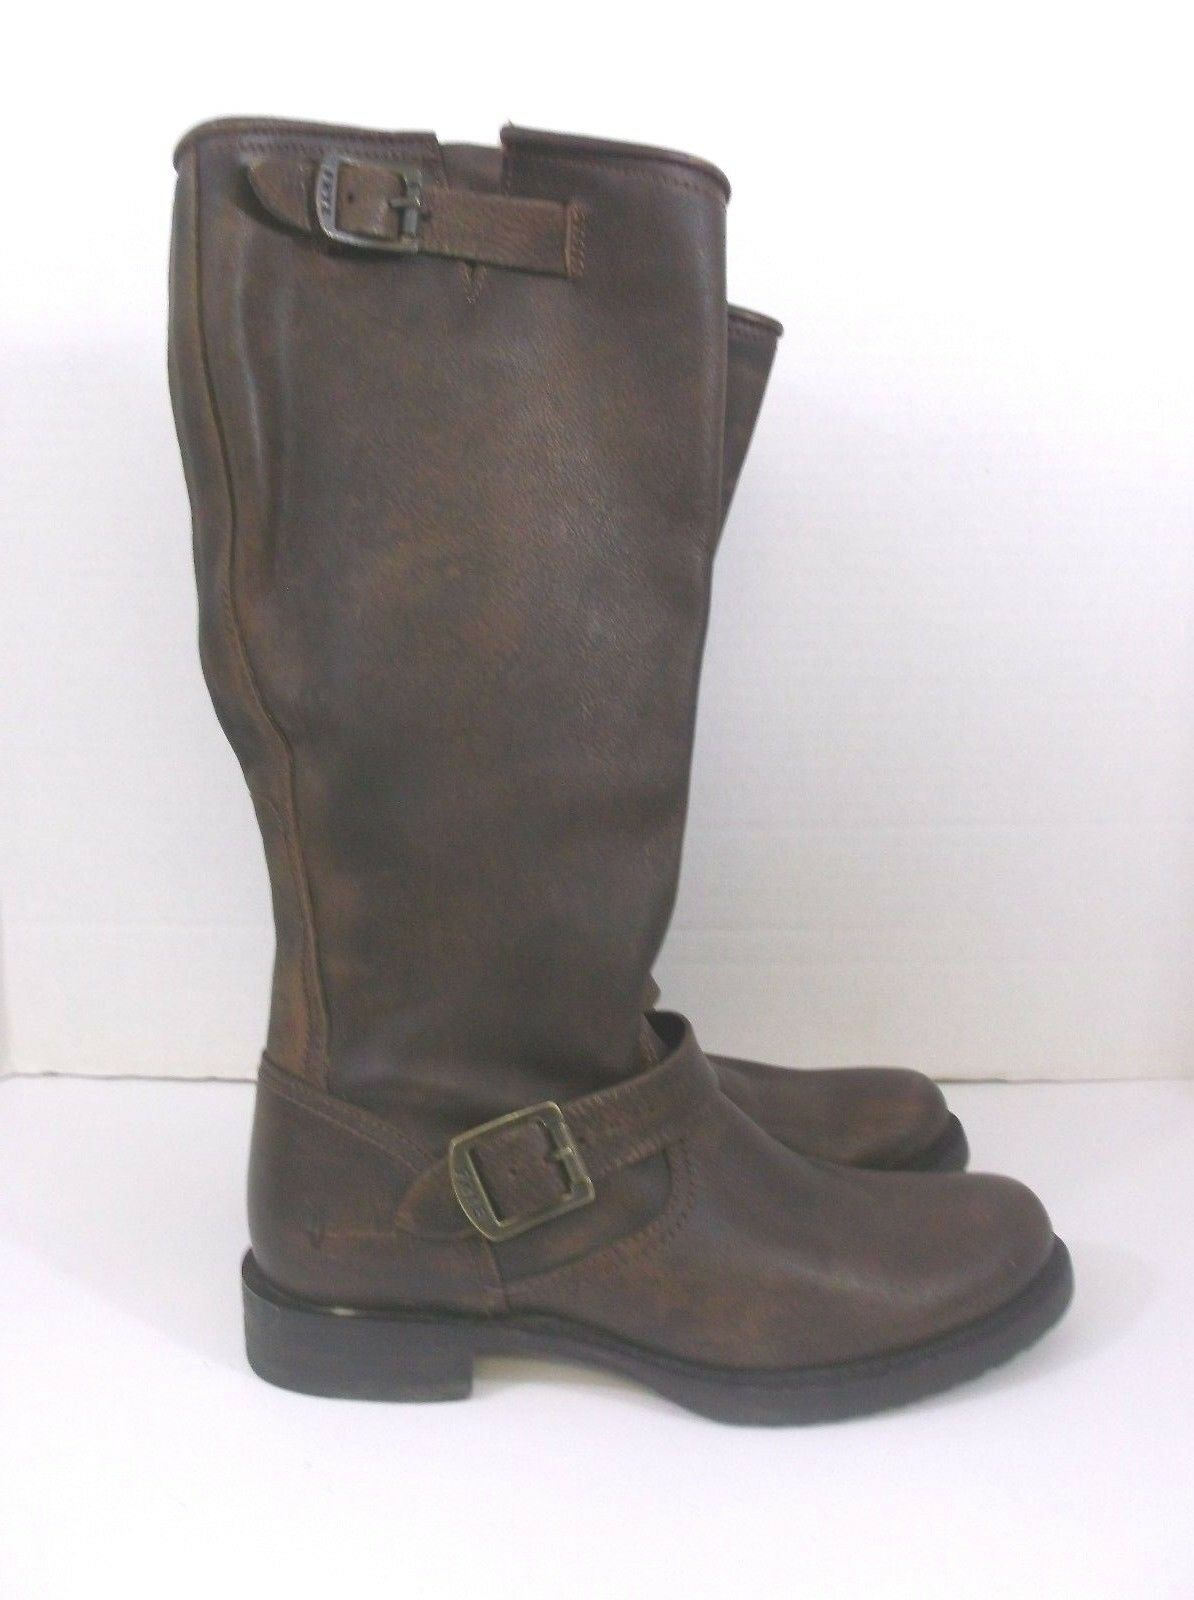 Frye Women's Boots Brown 8 Knee length Buckles NWT no box